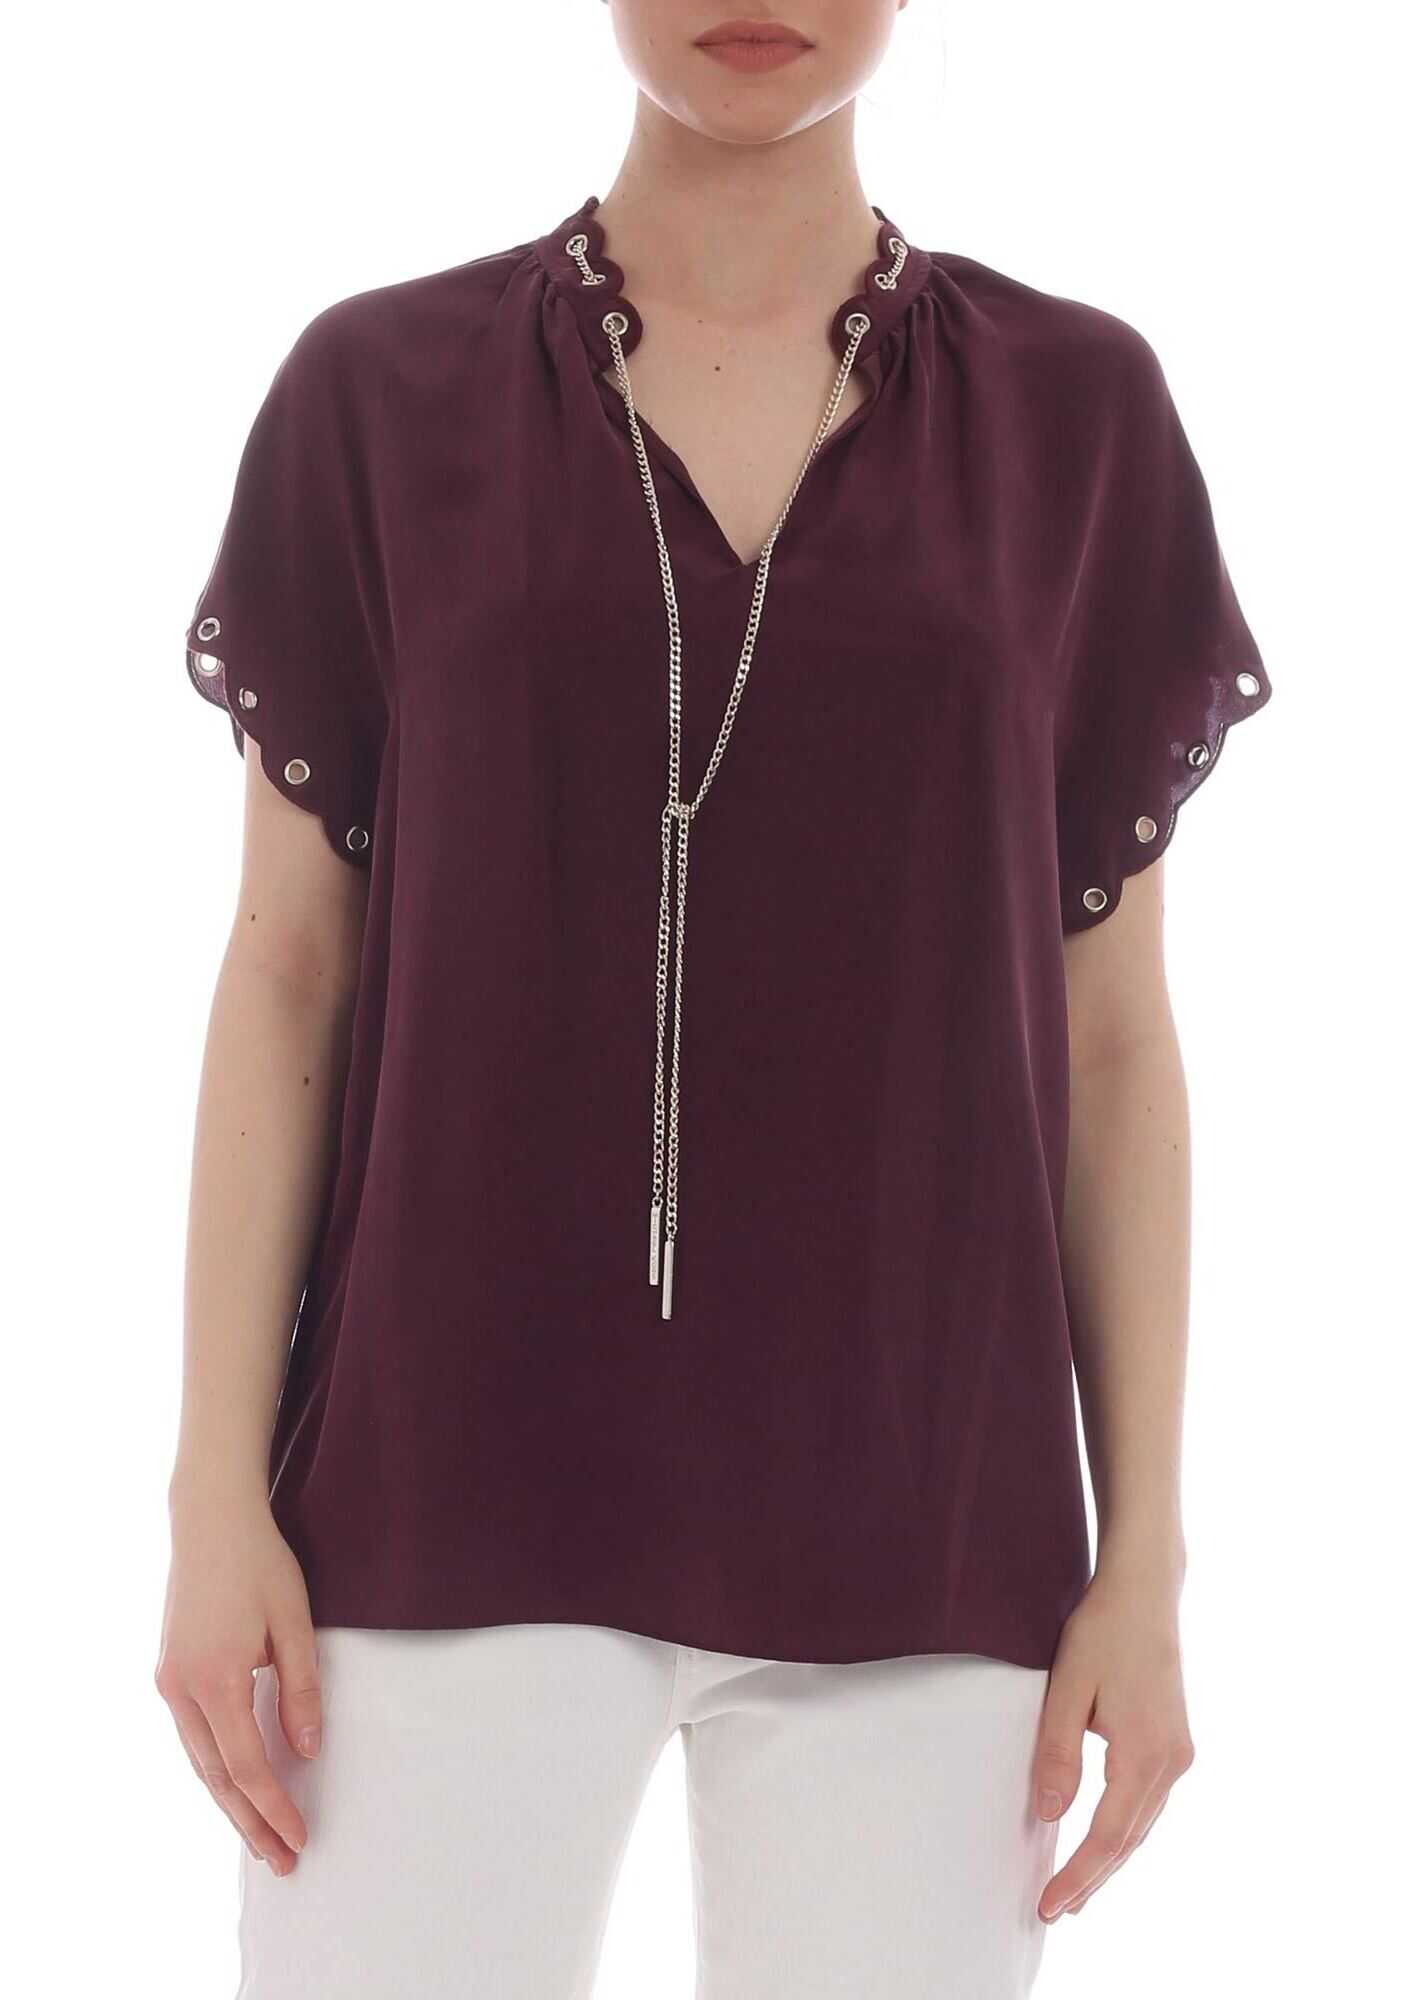 Pure Plum-Colored Silk Blouse